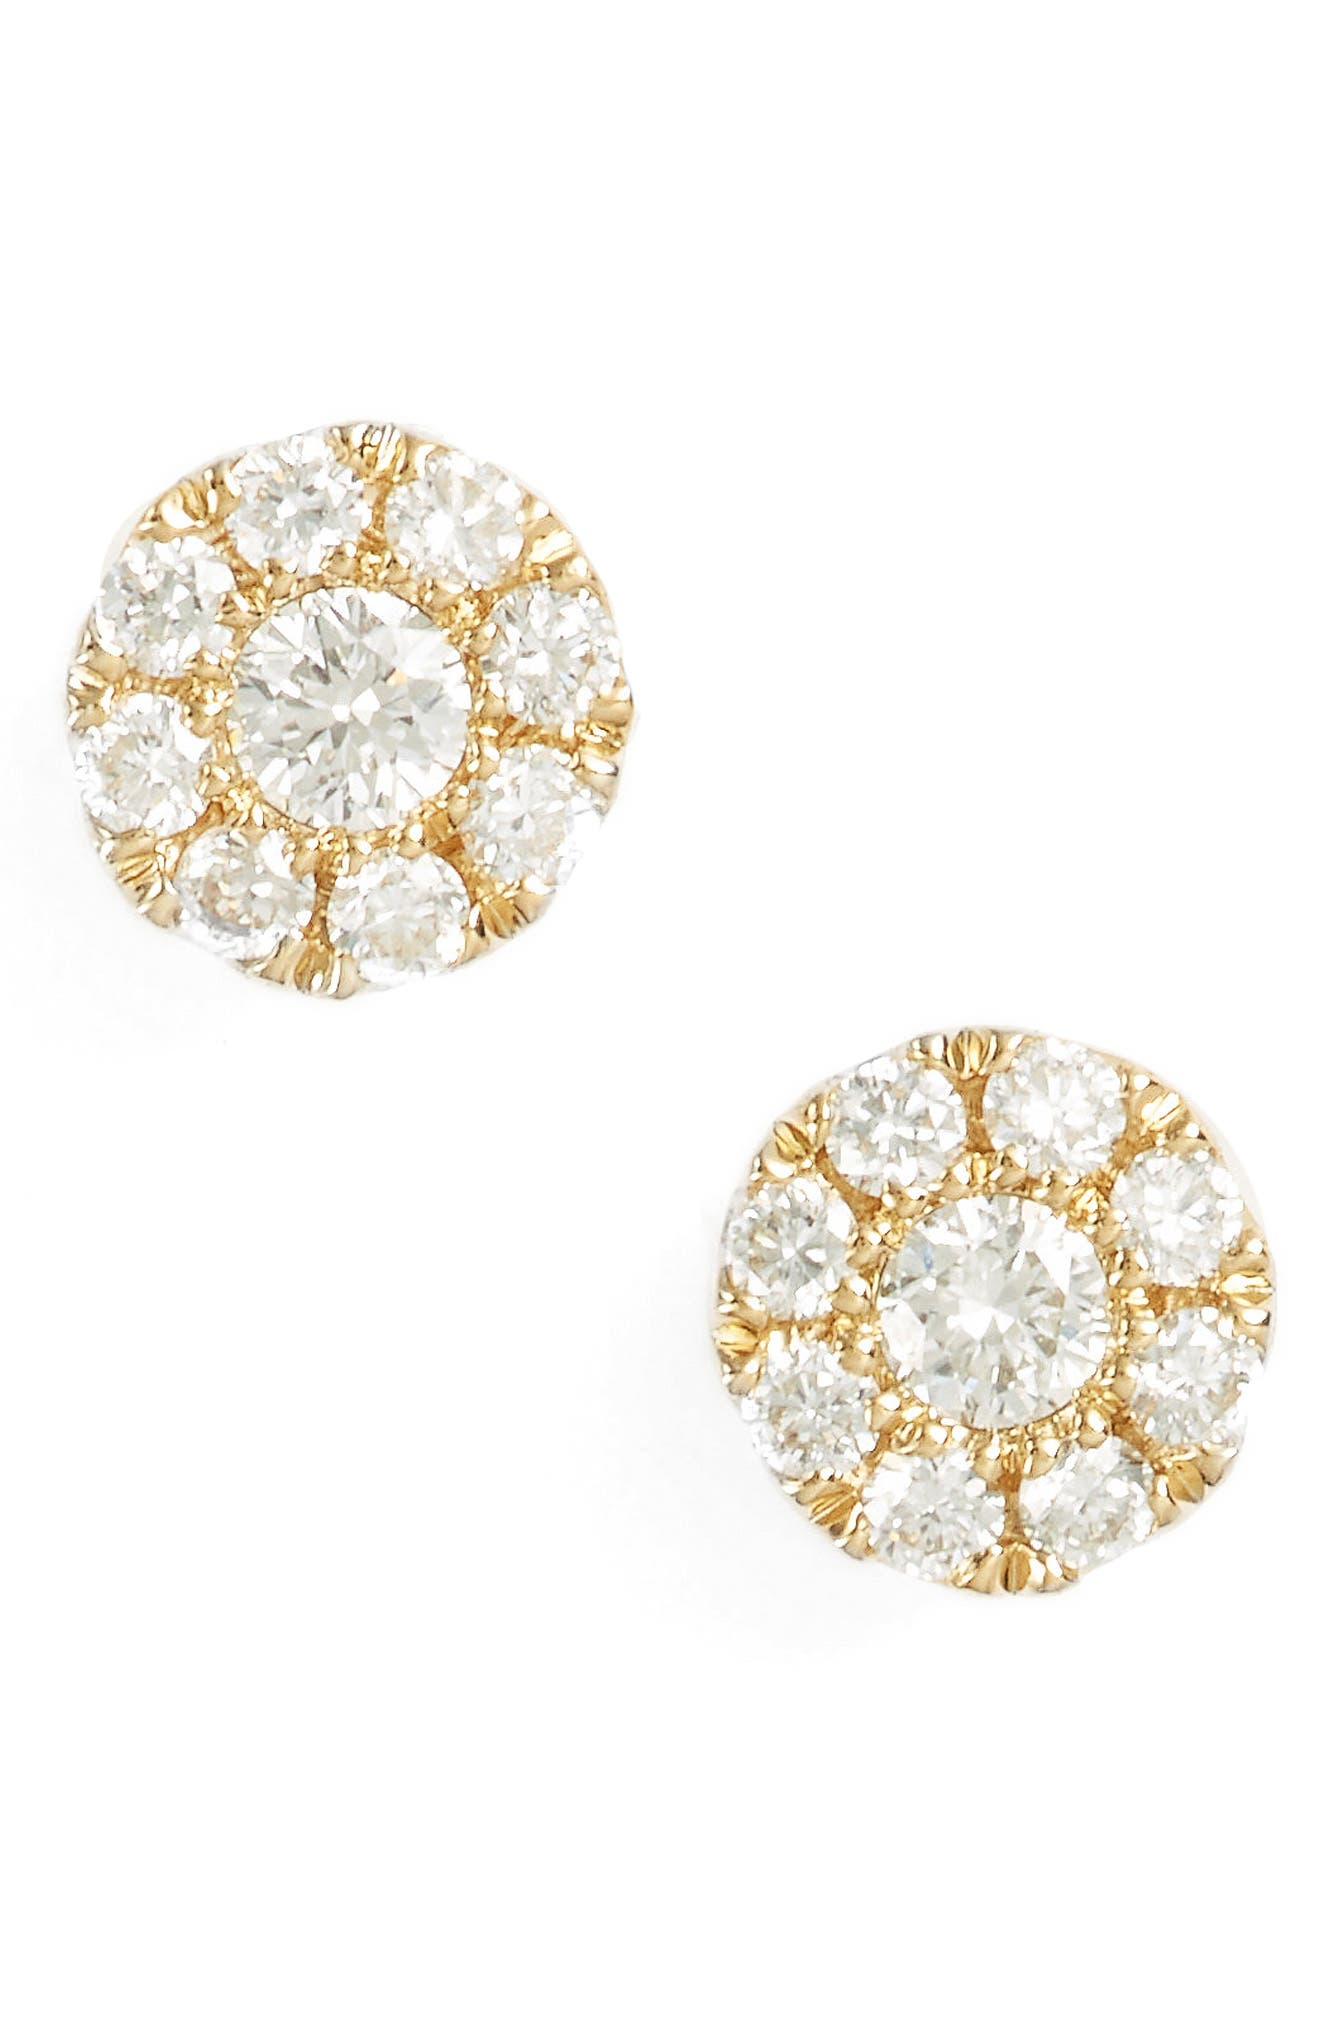 Simple Obsessions Pavé Diamond Stud Earrings,                             Main thumbnail 1, color,                             710